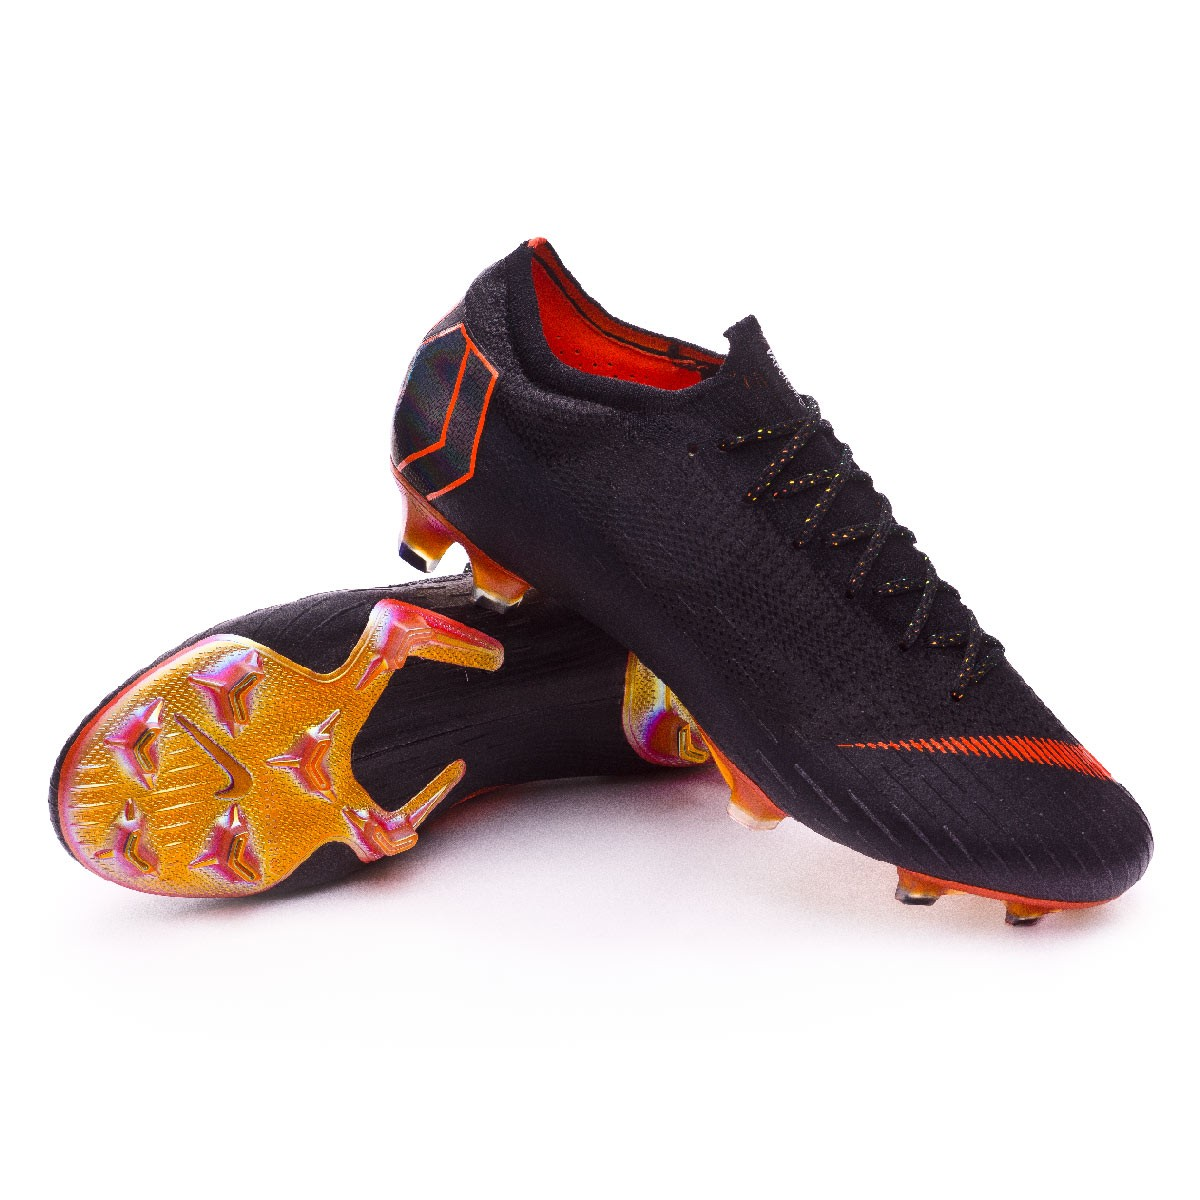 cheap for discount 2ee65 ebc3e Nike Mercurial Vapor XII Elite FG Football Boots. Black-Total orange-White  ...